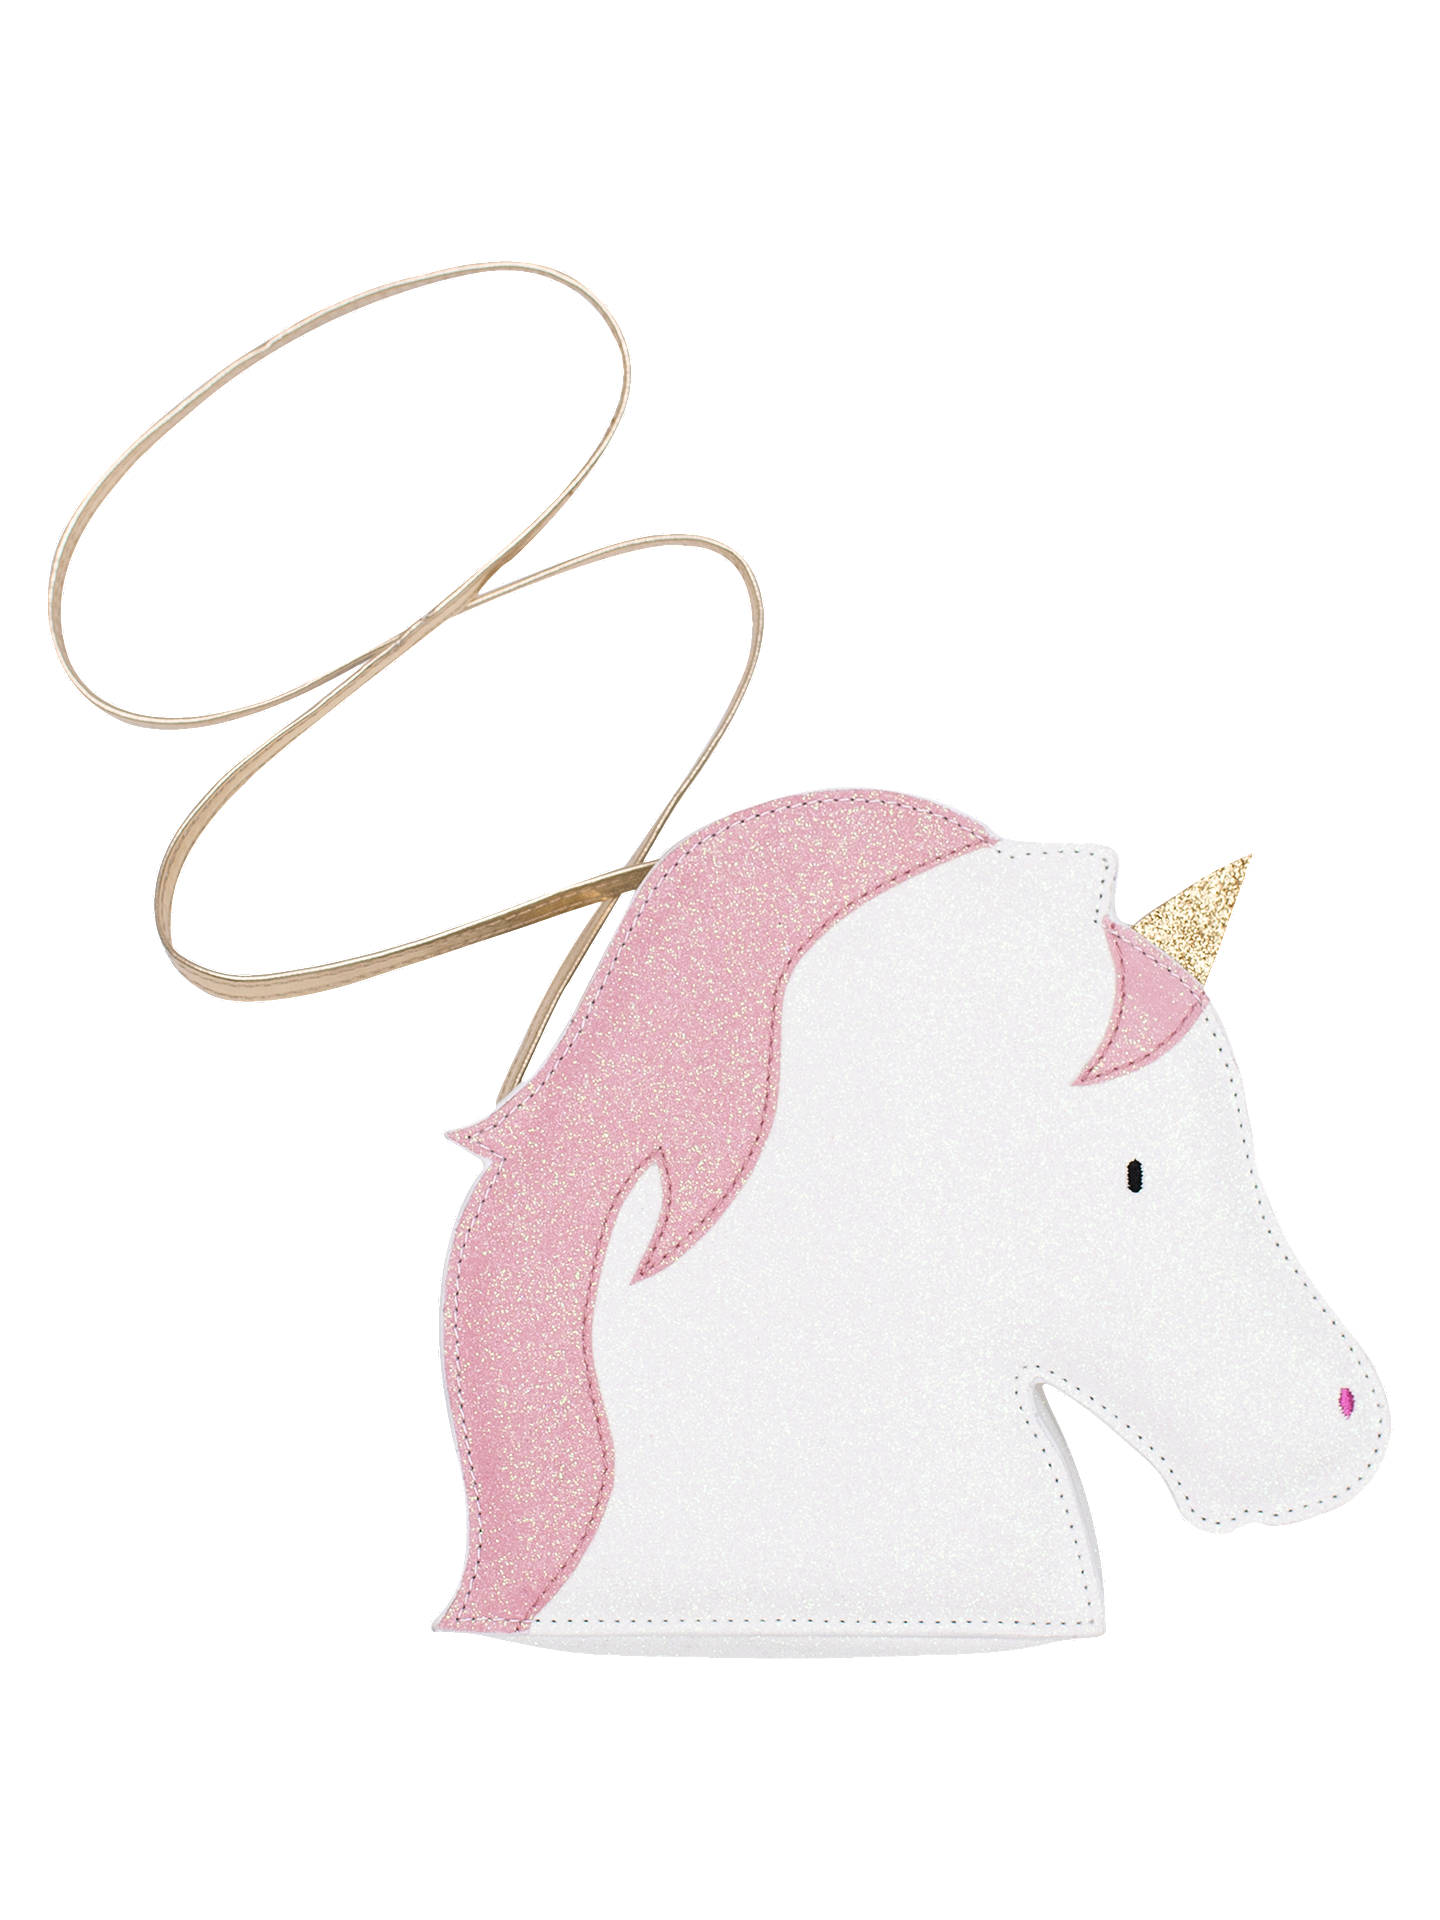 BuyBilly Loves Audrey Children's Glitter Unicorn Shoulder Bag, White/Pink Online at johnlewis.com